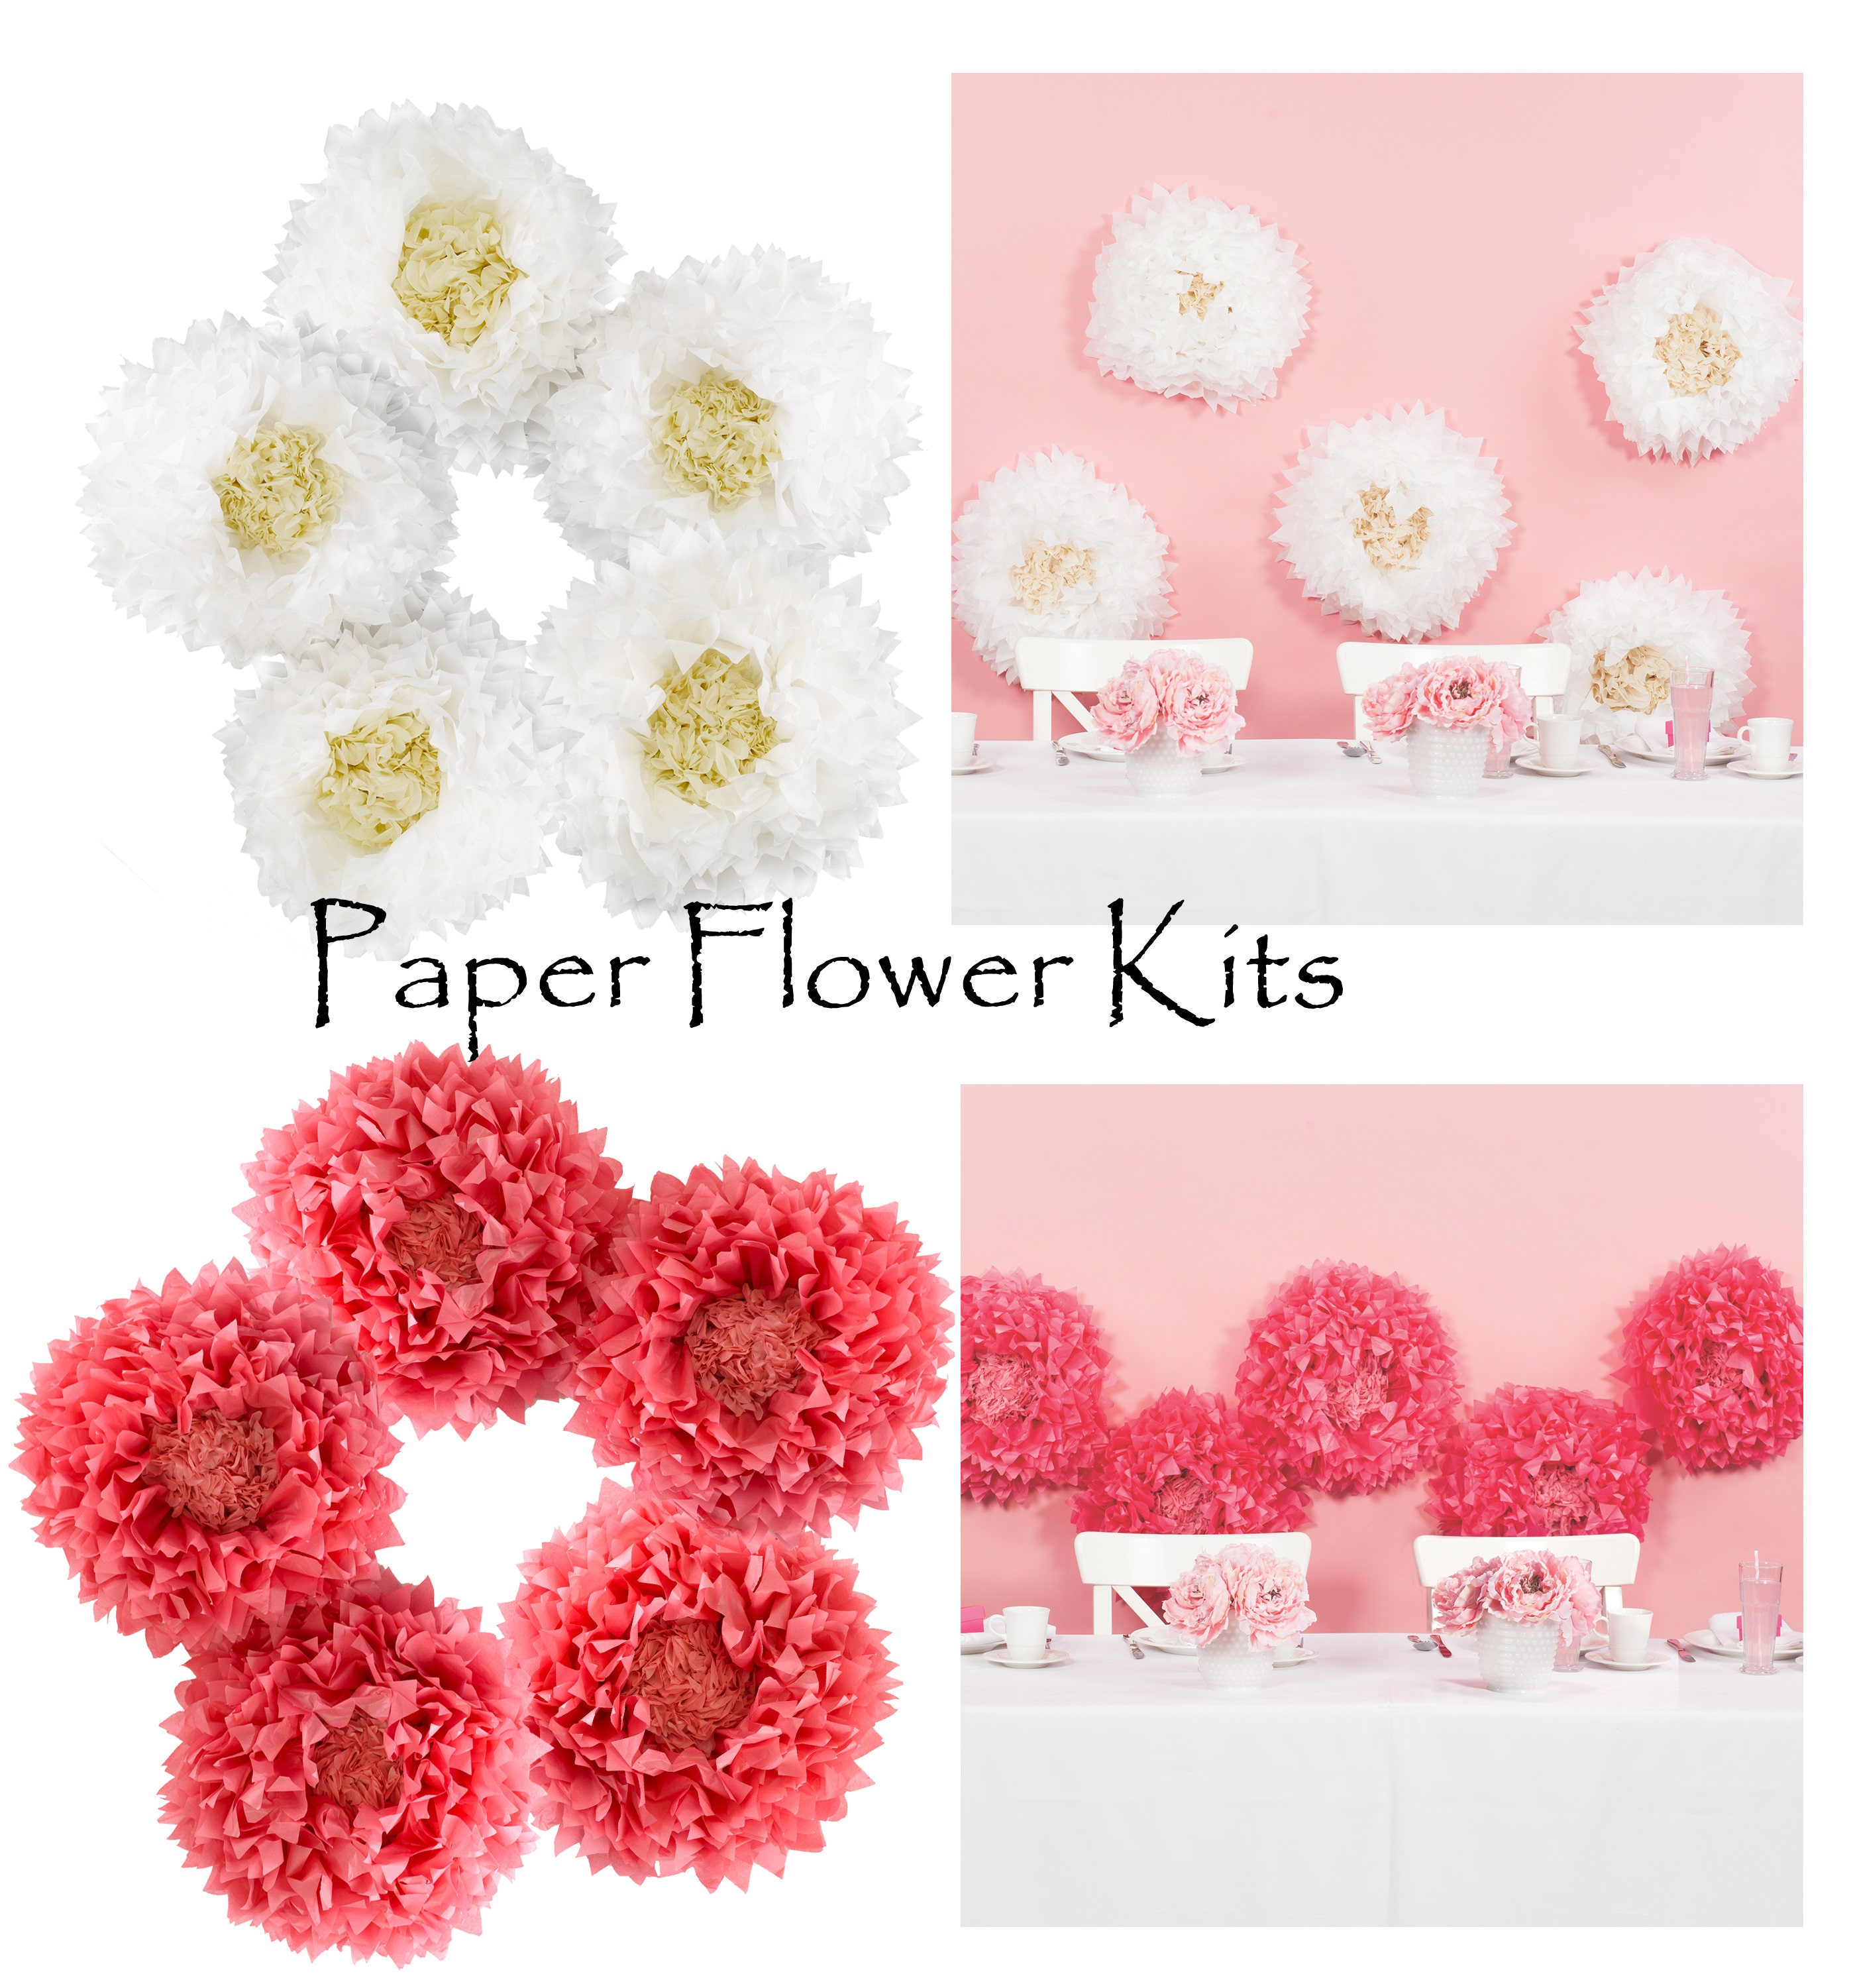 Amazing tissue paper flower kit photos images for wedding gown tissue paper flower kit u make 5 flowers party decorations mightylinksfo